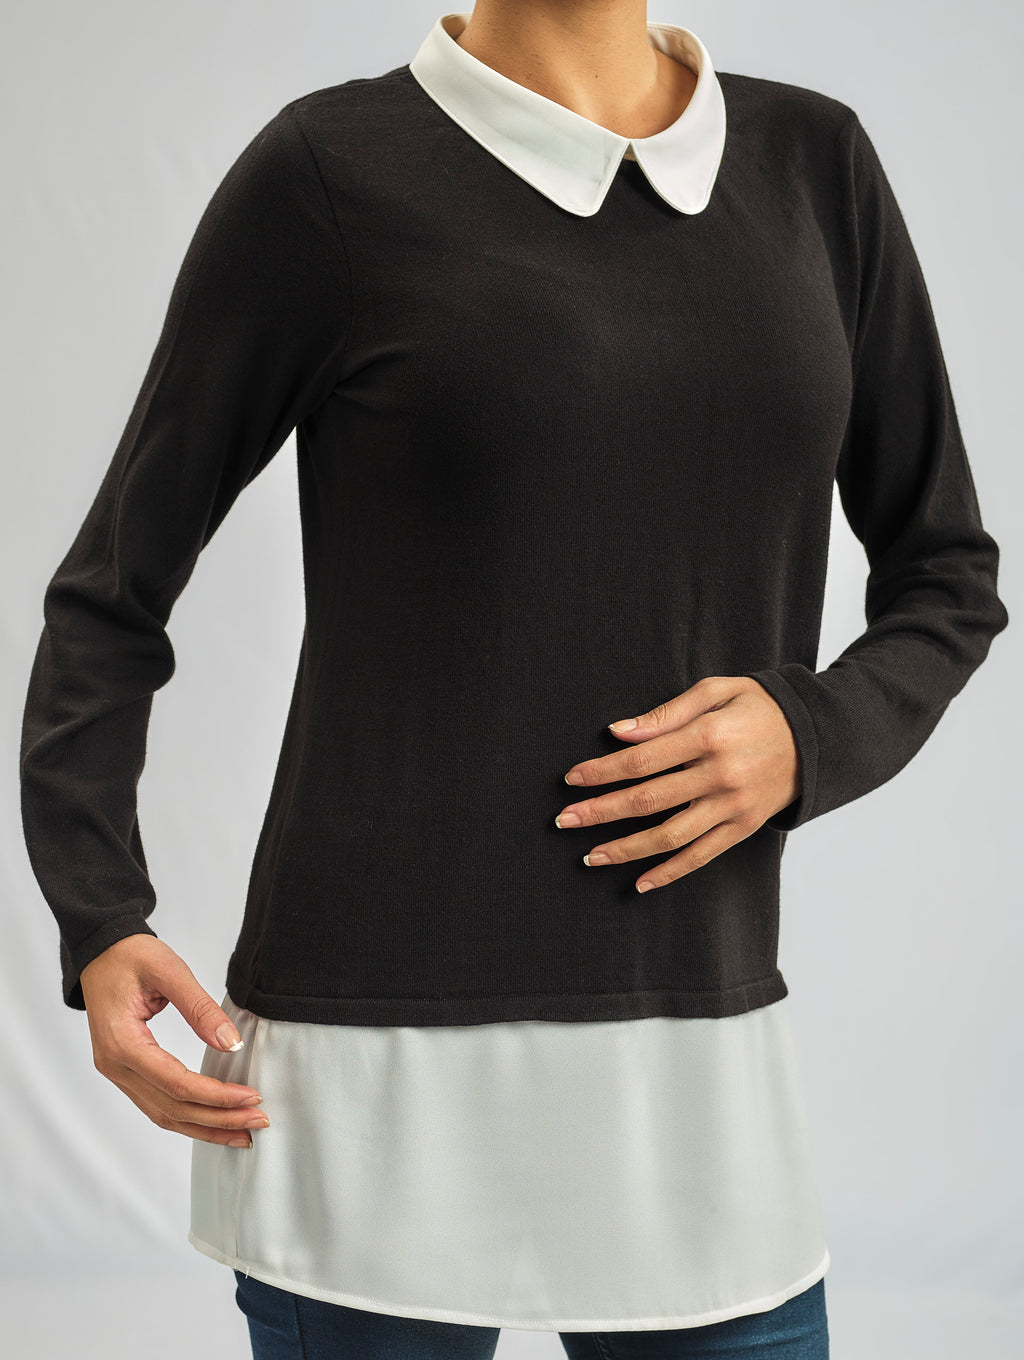 2 IN 1 - COTTON AND WOOL BLENDED KNITWEAR ATTACHED TO A SILKY CREPE CHIFFON LAYER